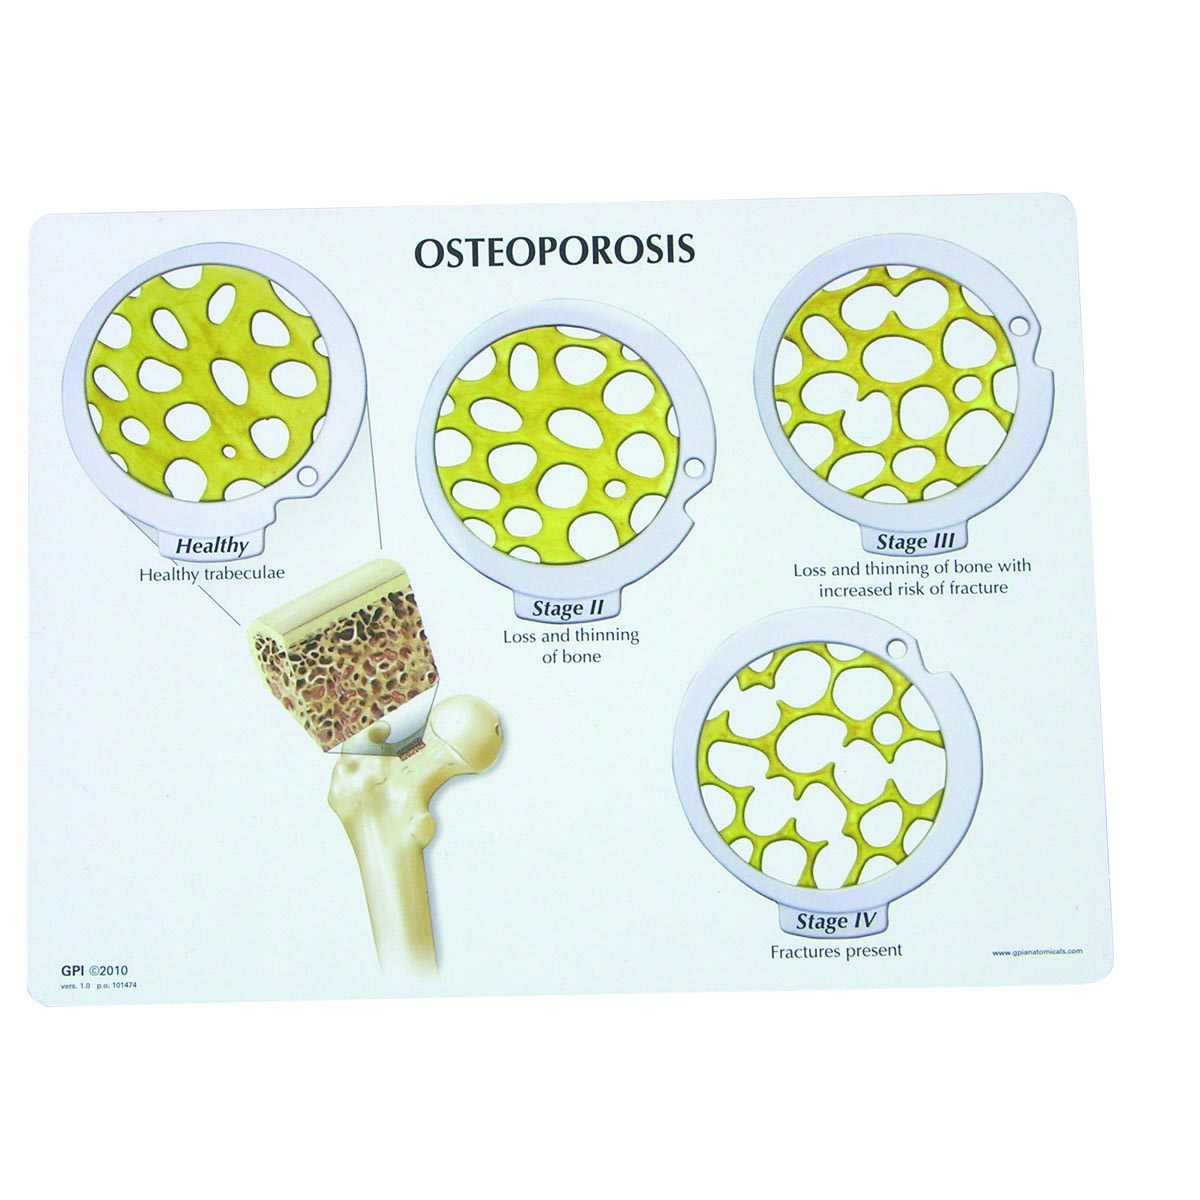 osteoporosis Osteoporosis is a major health problem, affecting more than 44 million americans and contributing to an estimated 2 million bone fractures per year.